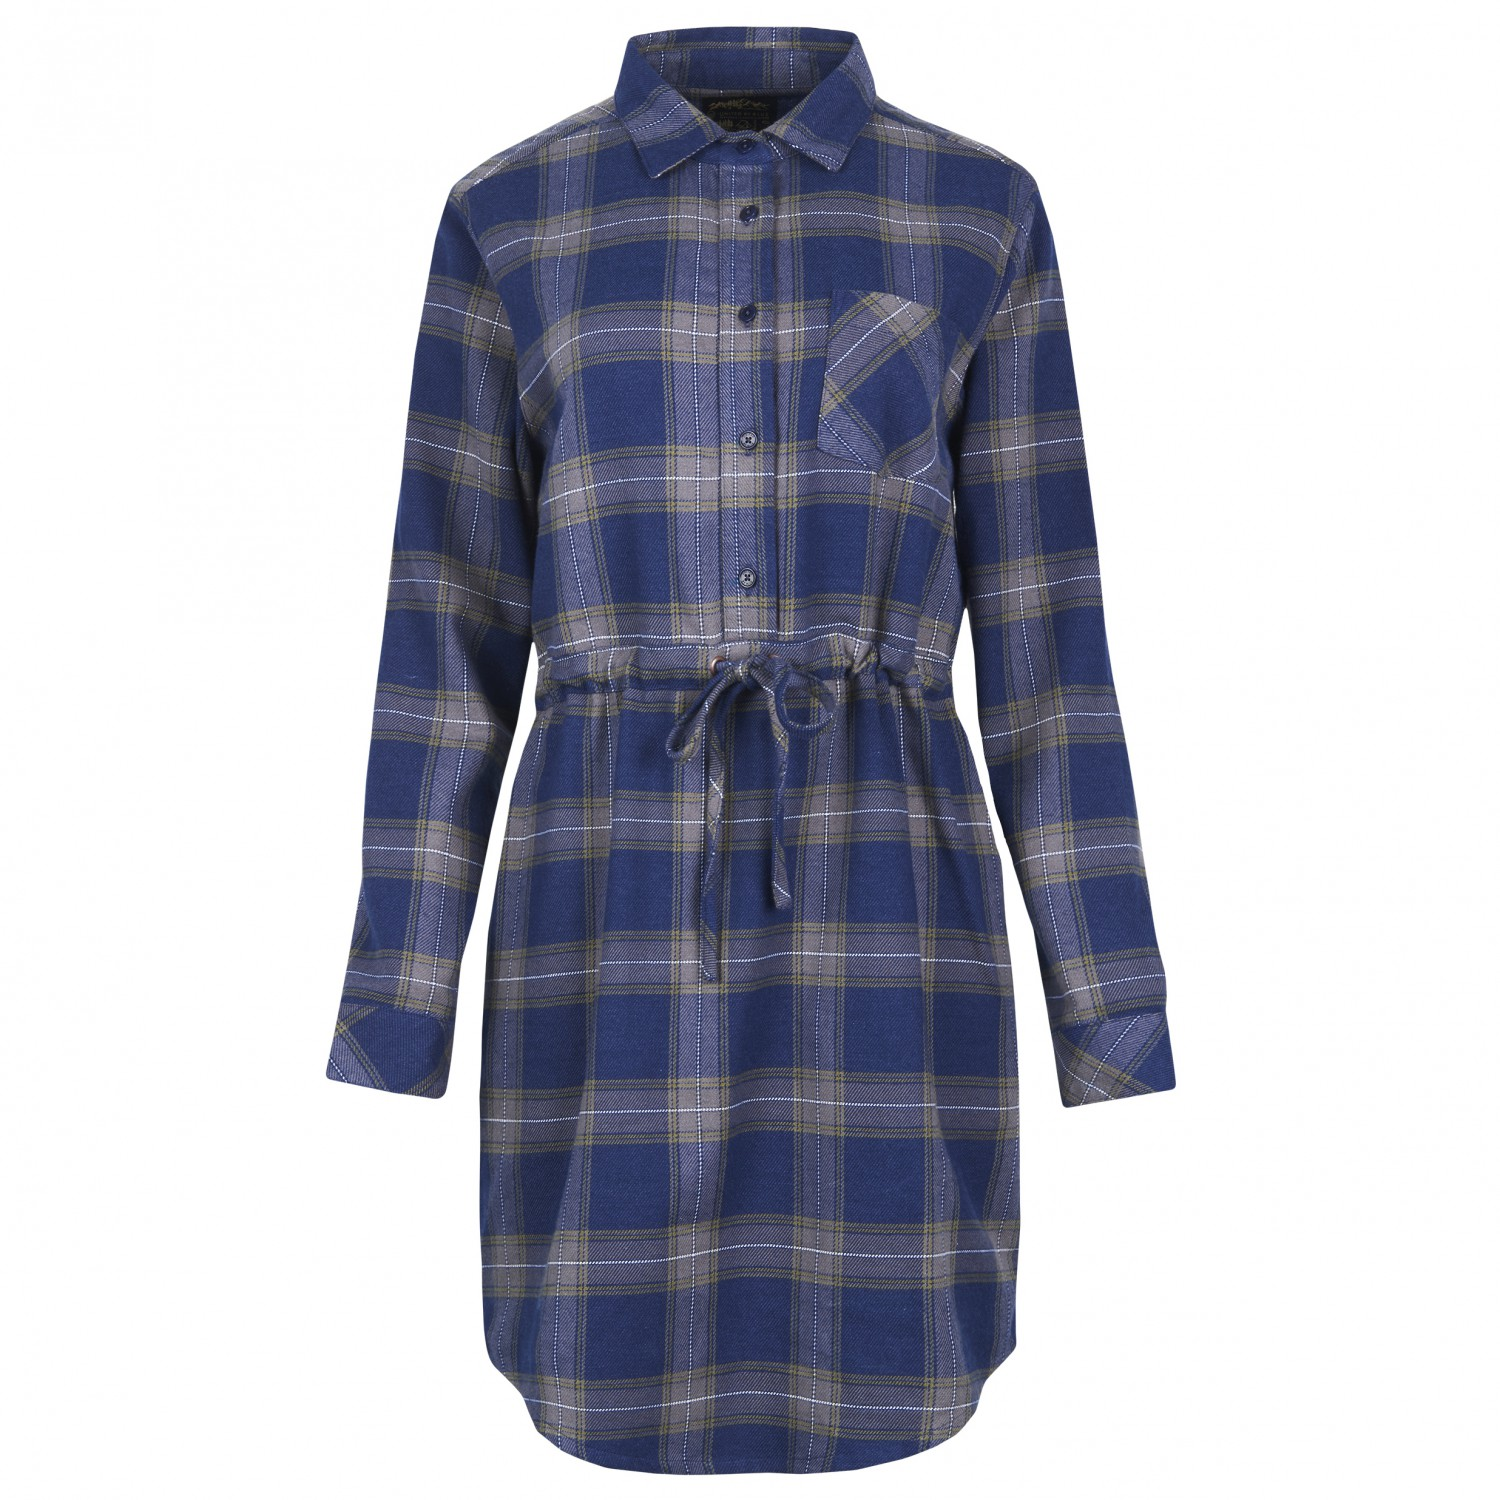 308a8bbc8a United By Blue - Women s Moraine Flannel Dress - Dress